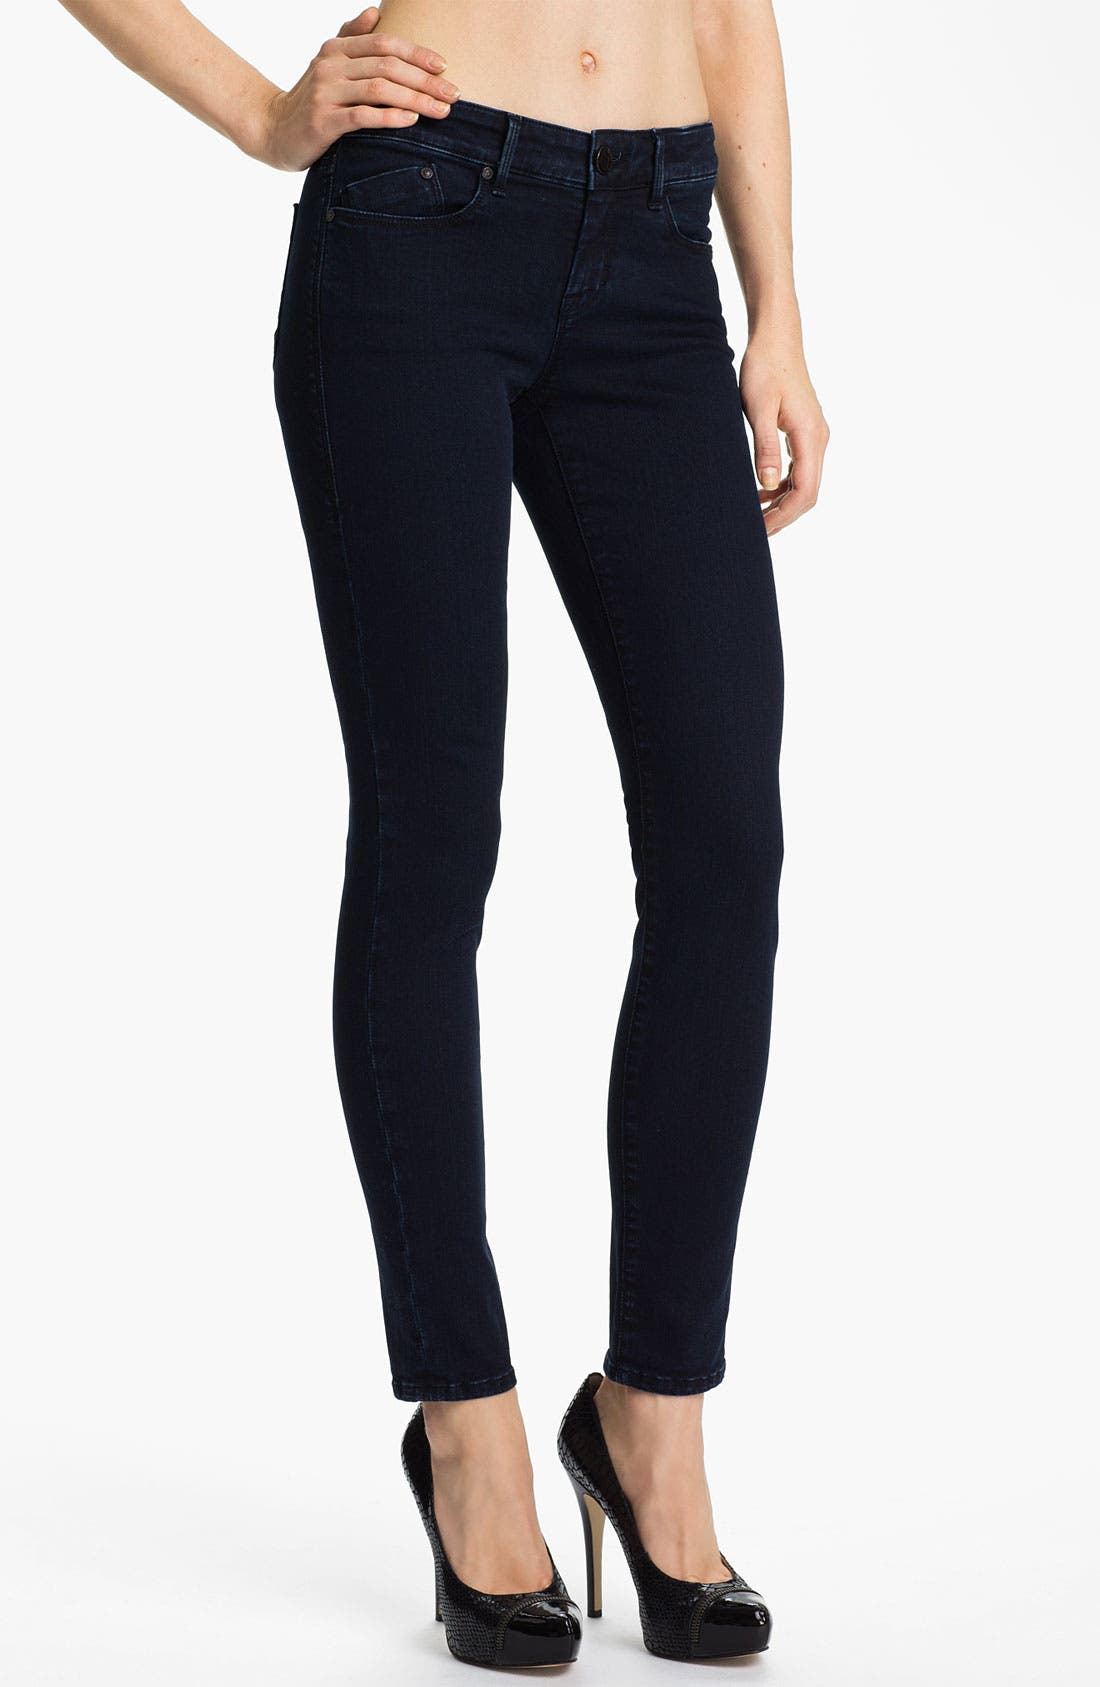 Alternate Image 1 Selected - Dylan George Mid Rise Skinny Jeans (Shadow Blue)